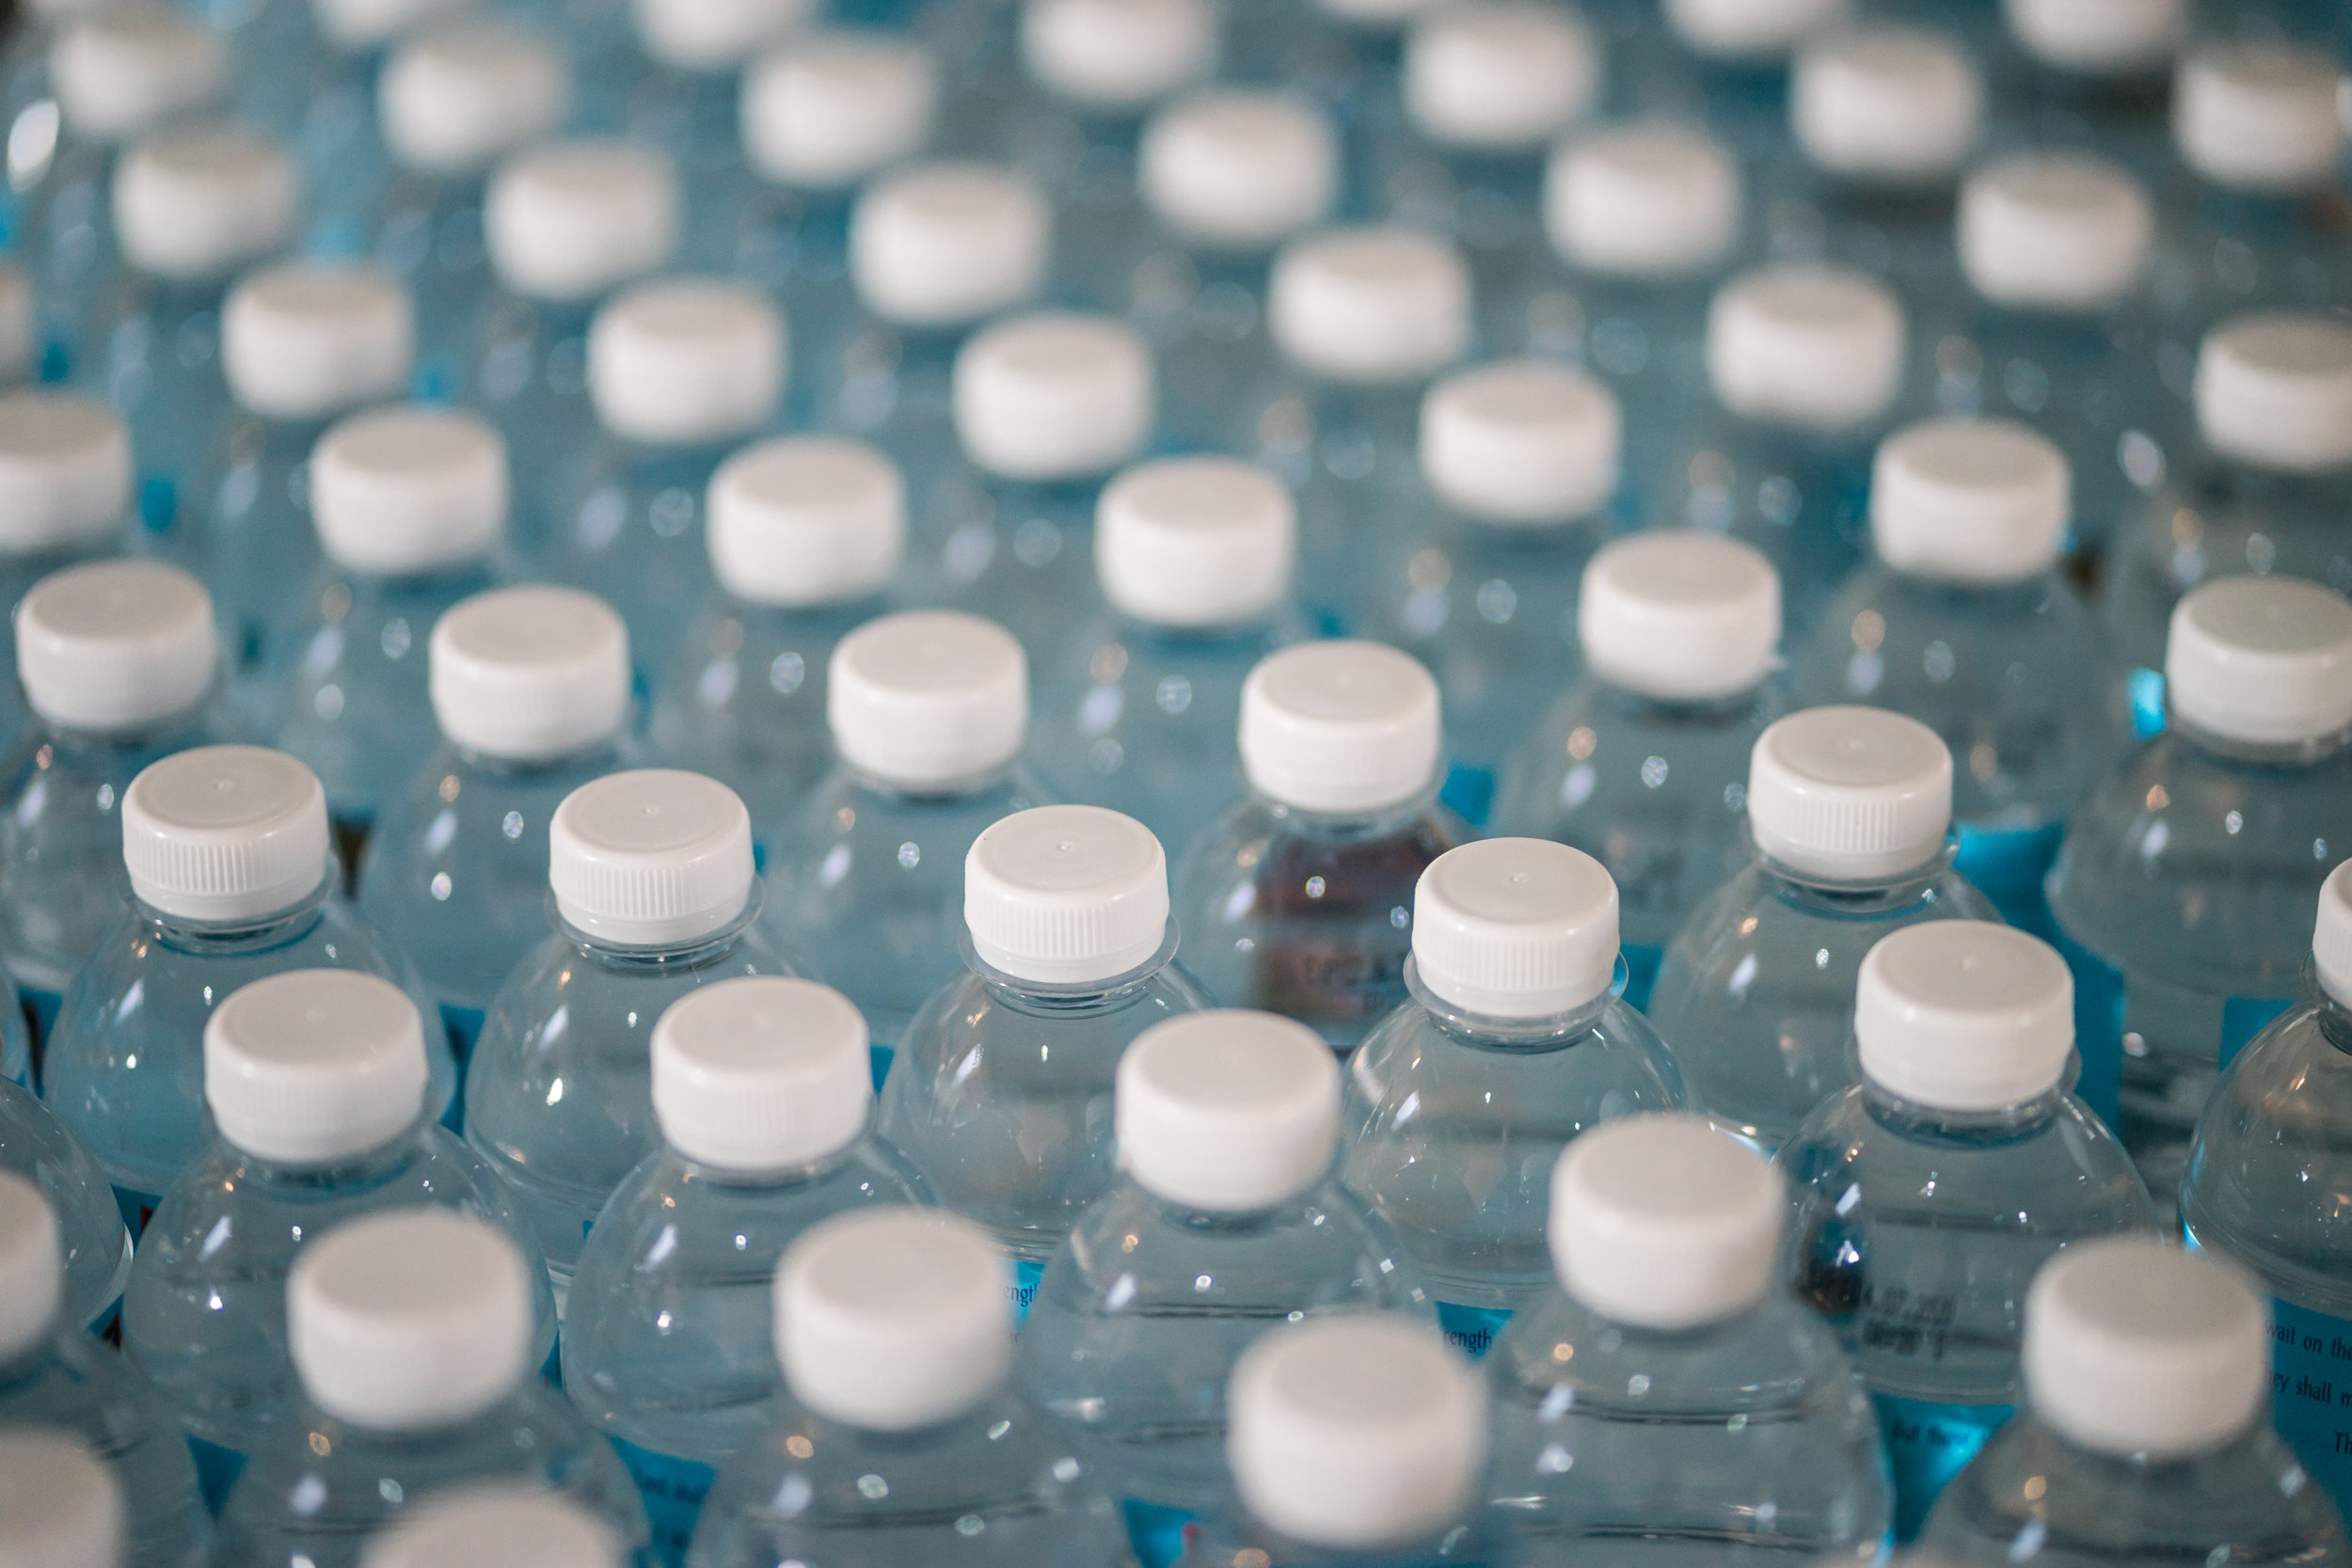 1,000,000 Per minute - The Guardian reports that worldwide, we purchase one million single-use plastic water bottles every single minute. Approximately 7% are recycled. The rest wind up in our landfills and oceans.